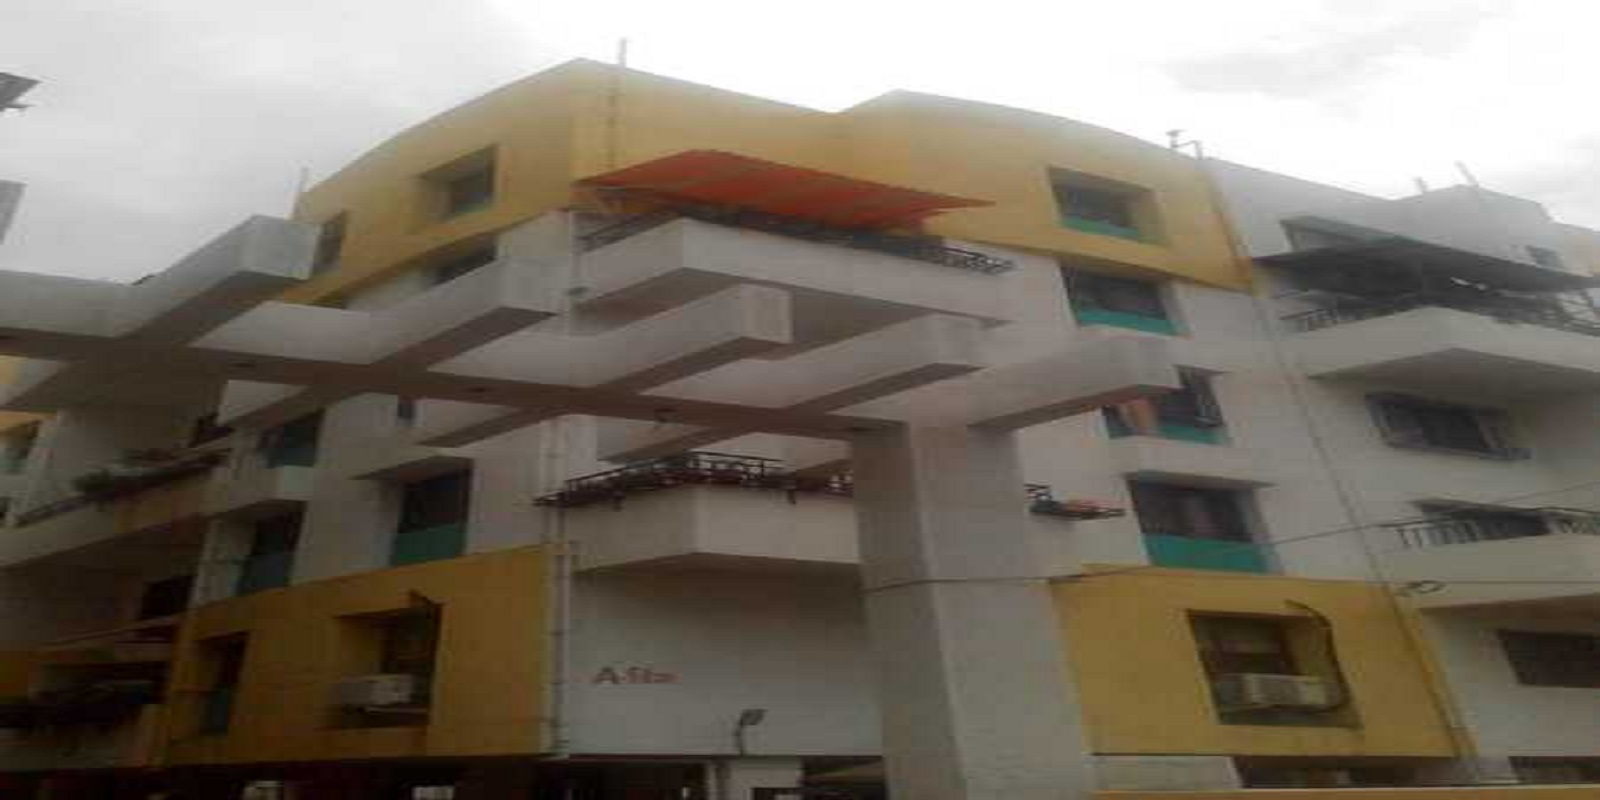 balaji residency a wing project project large image1